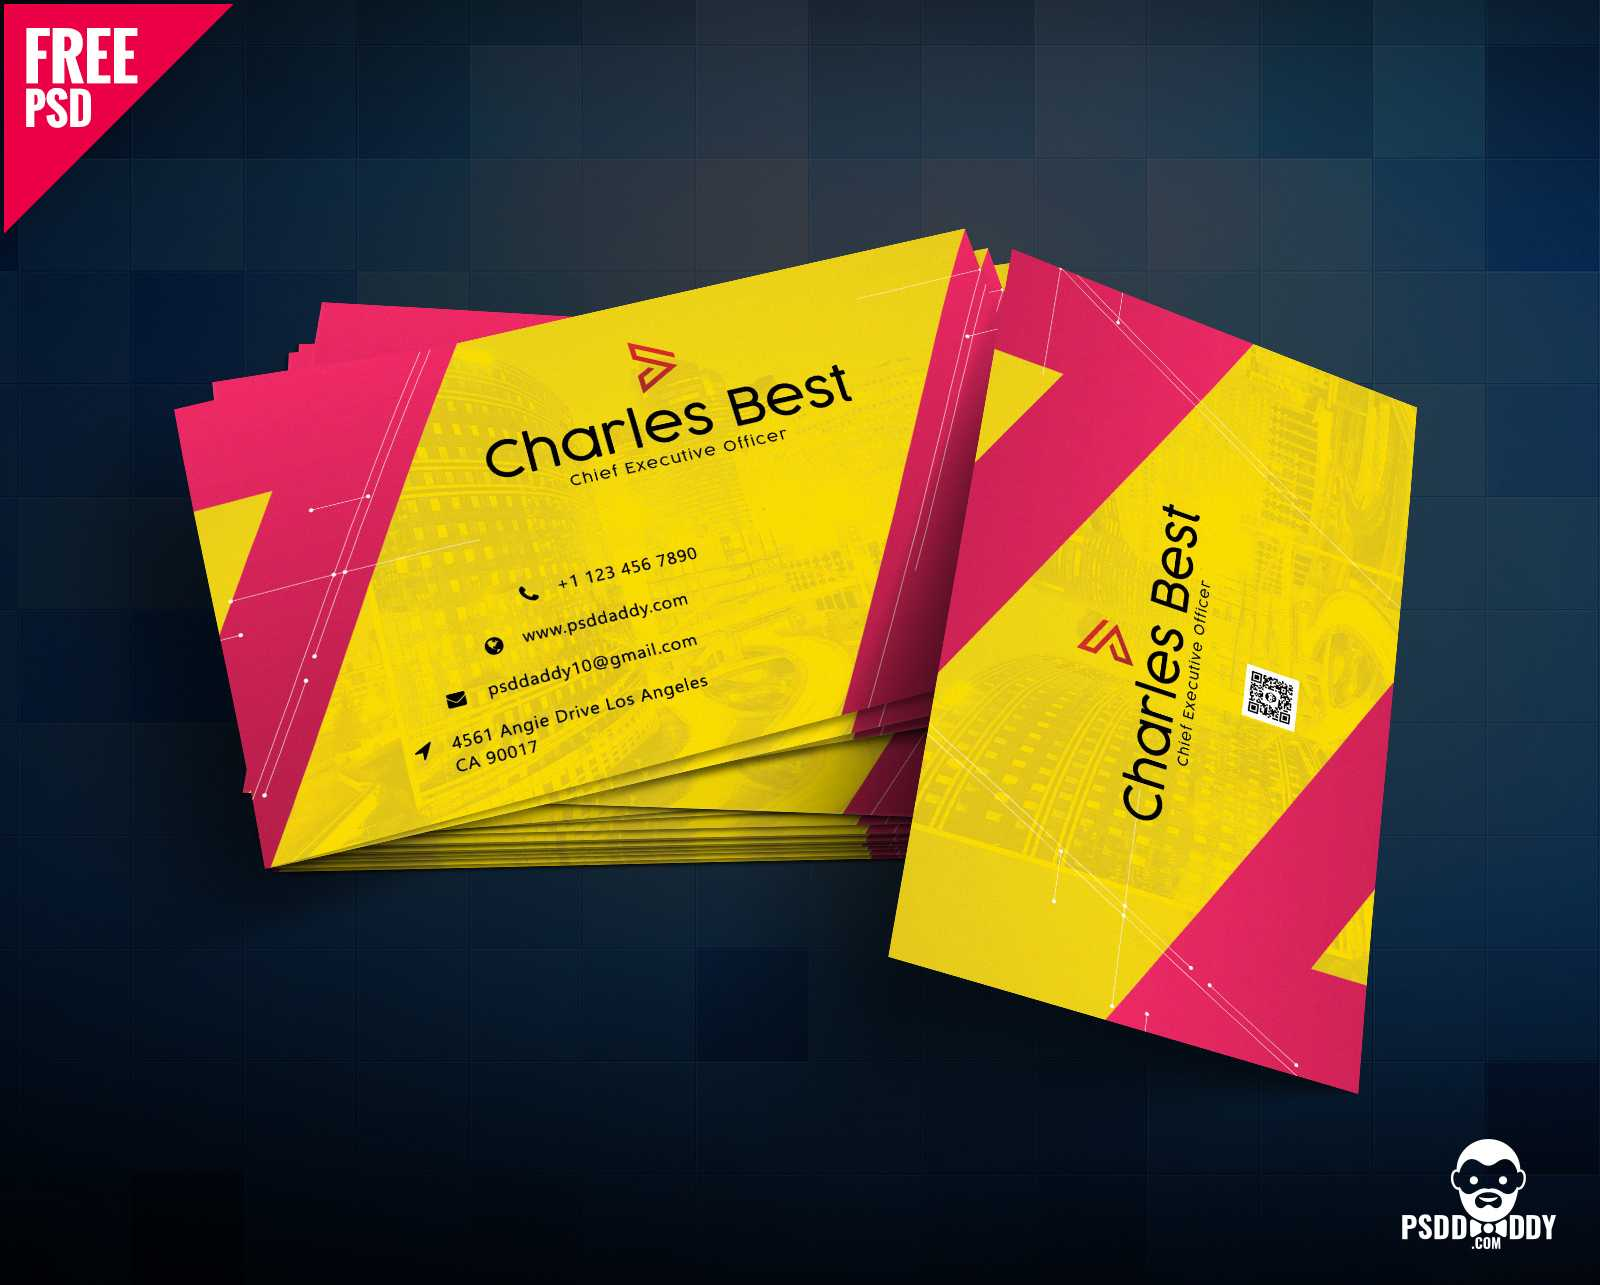 Download] Creative Business Card Free Psd | Psddaddy With Regard To Business Card Size Template Psd